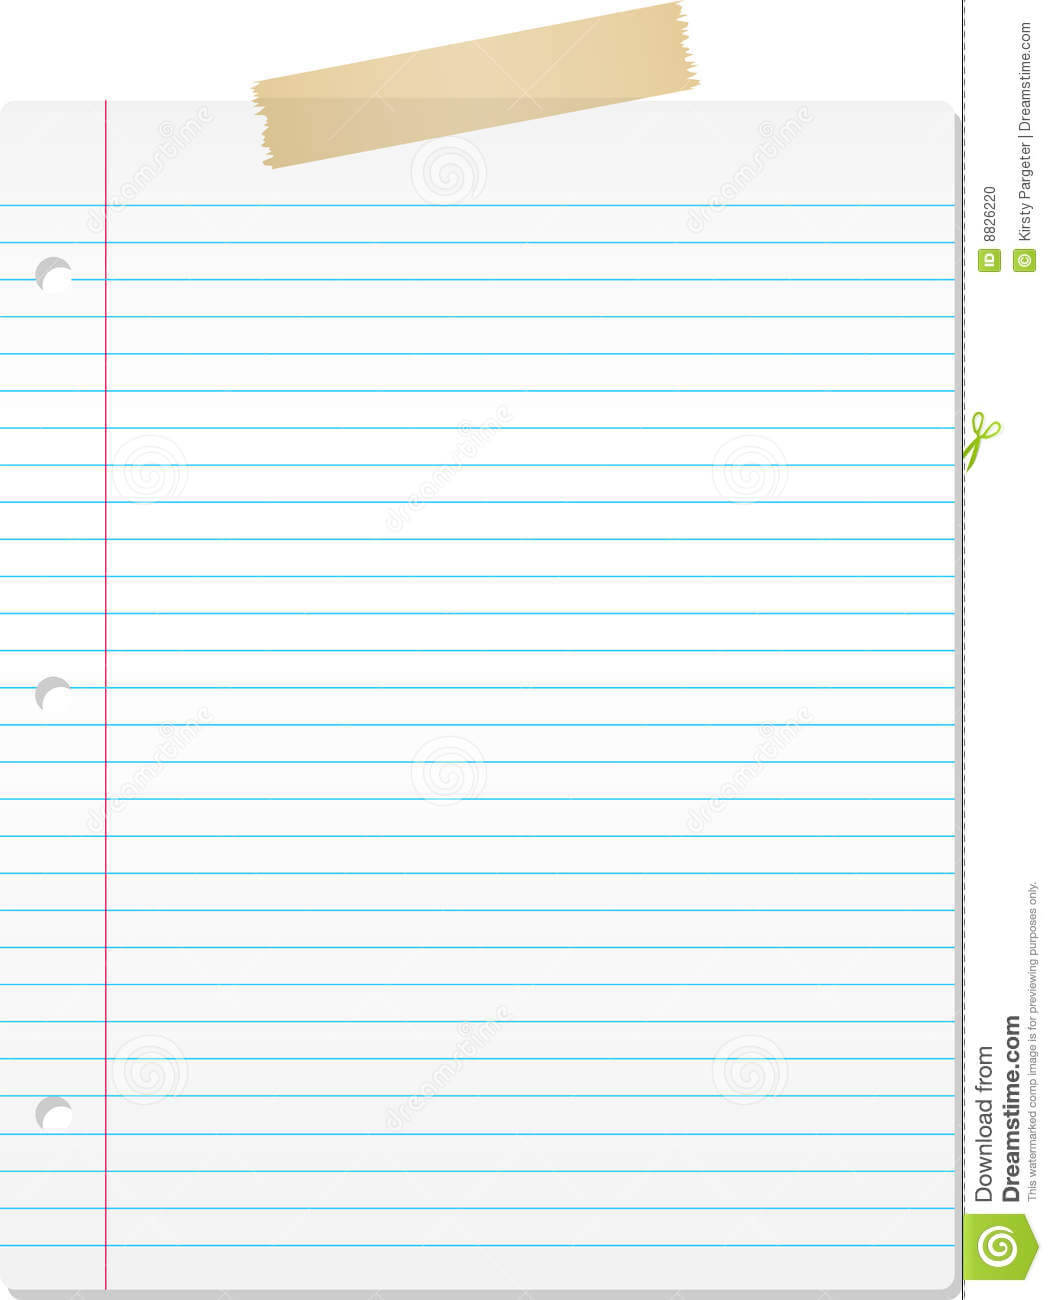 026 Microsoft Word Lined Paper Template Ideas Fantastic For Pertaining To Microsoft Word Lined Paper Template